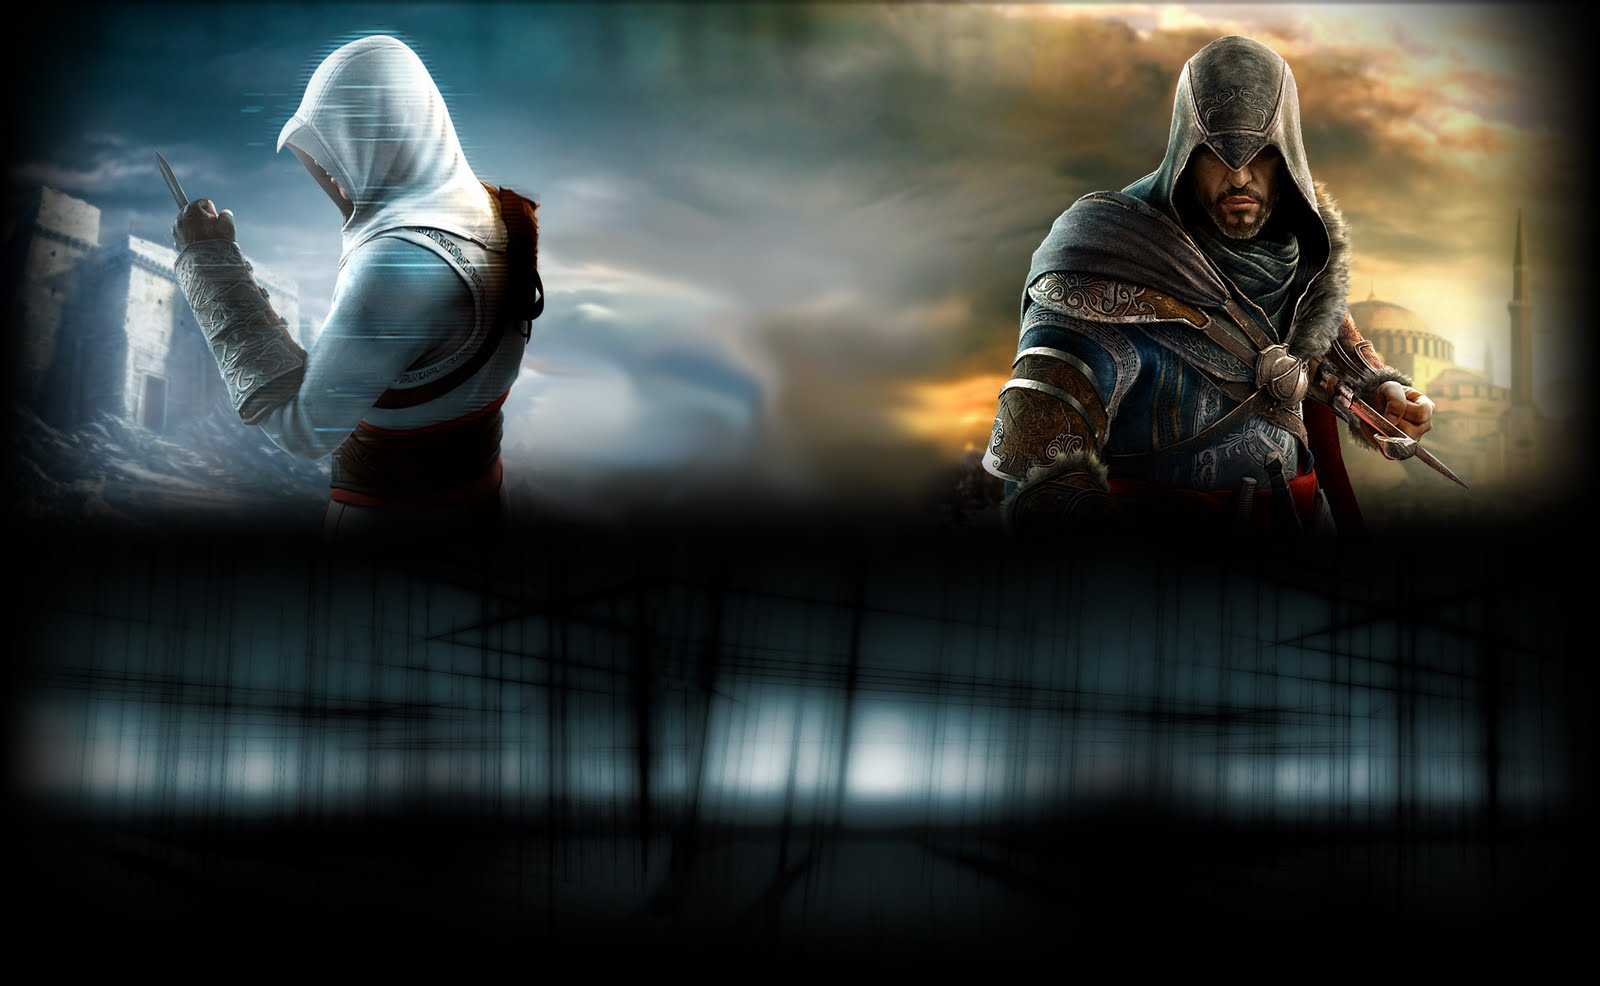 http://1.bp.blogspot.com/-jvzE-5hiY5c/TmapPcjGlFI/AAAAAAAAAyU/iE15iaKzOAY/s1600/Assassin%2527s+creed+Revelations+Wallpaper+Desktop.jpg